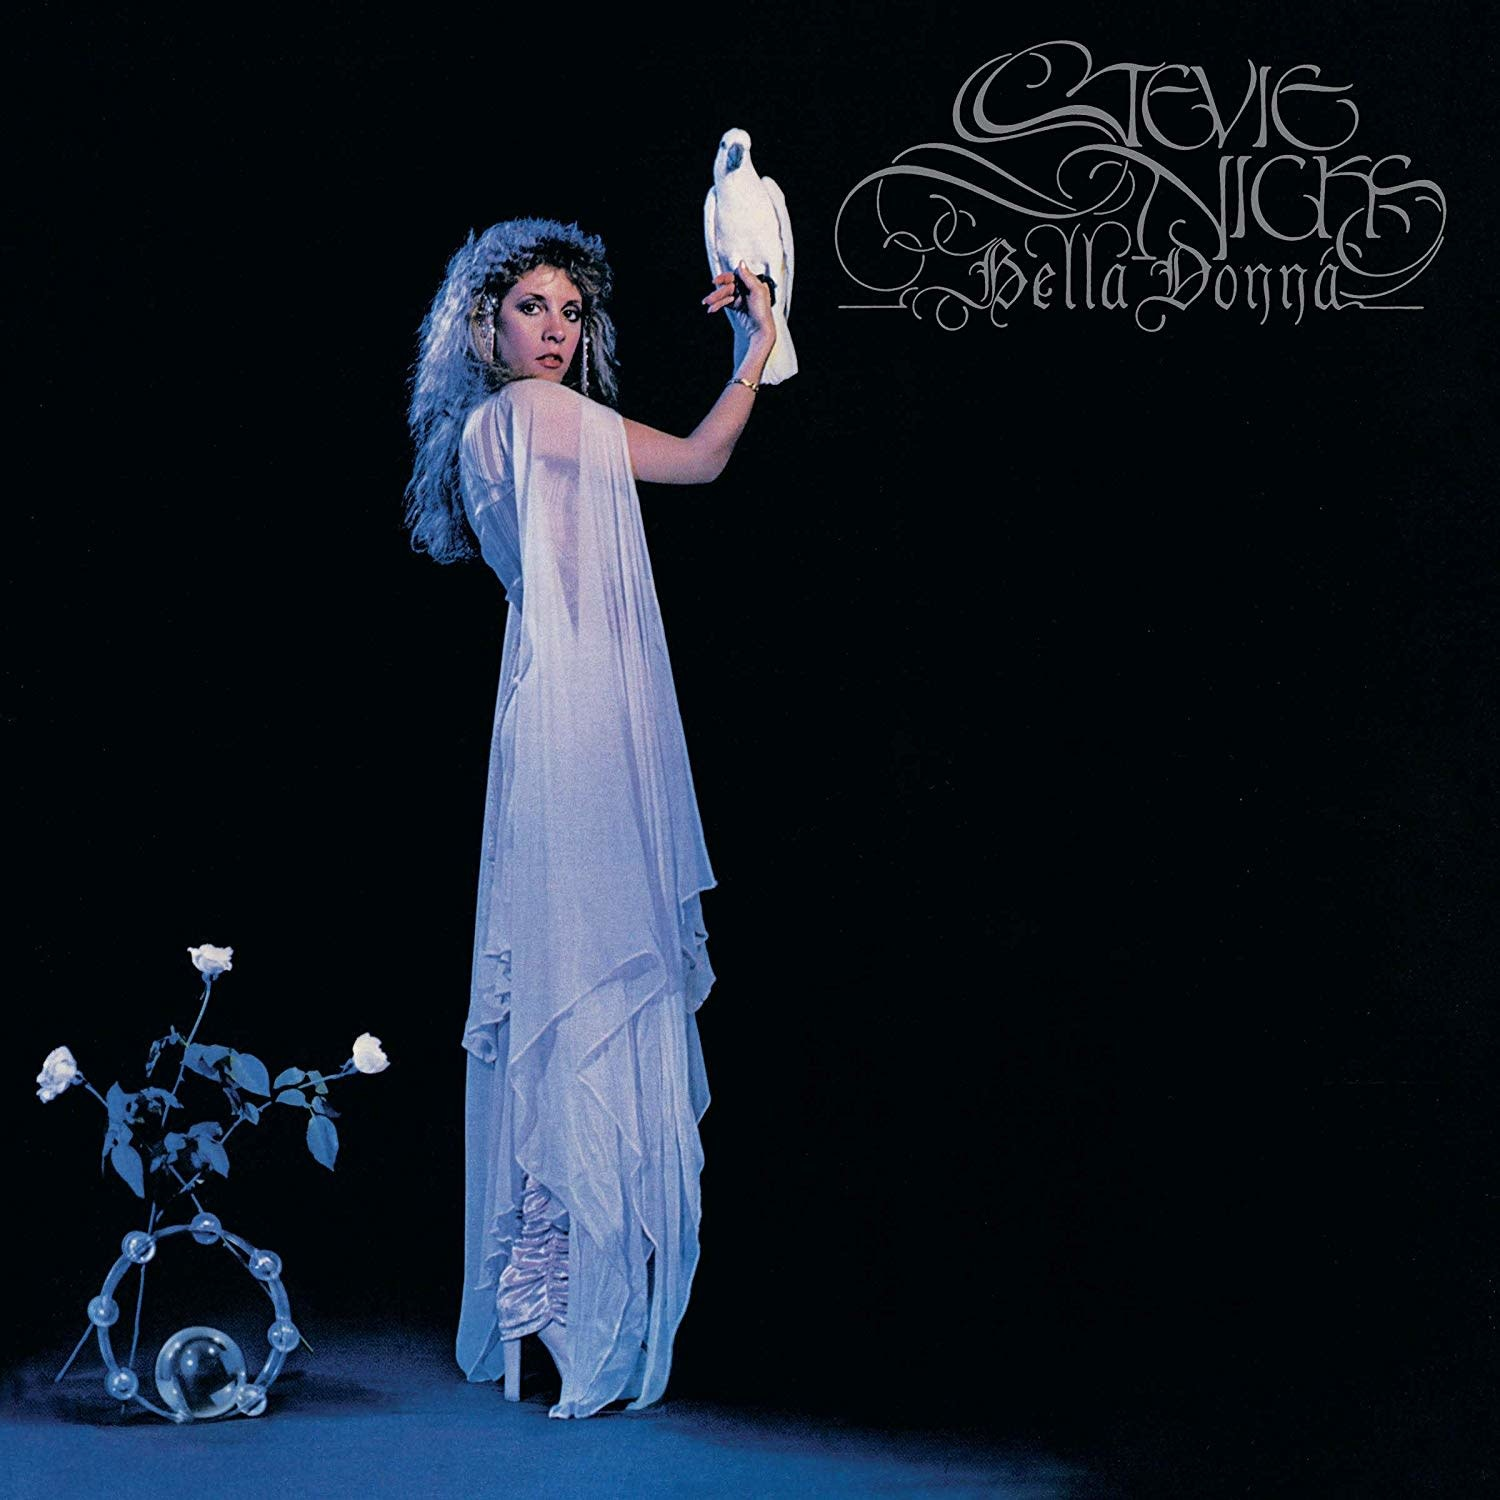 Stevie Nicks ‎– Bella Donna